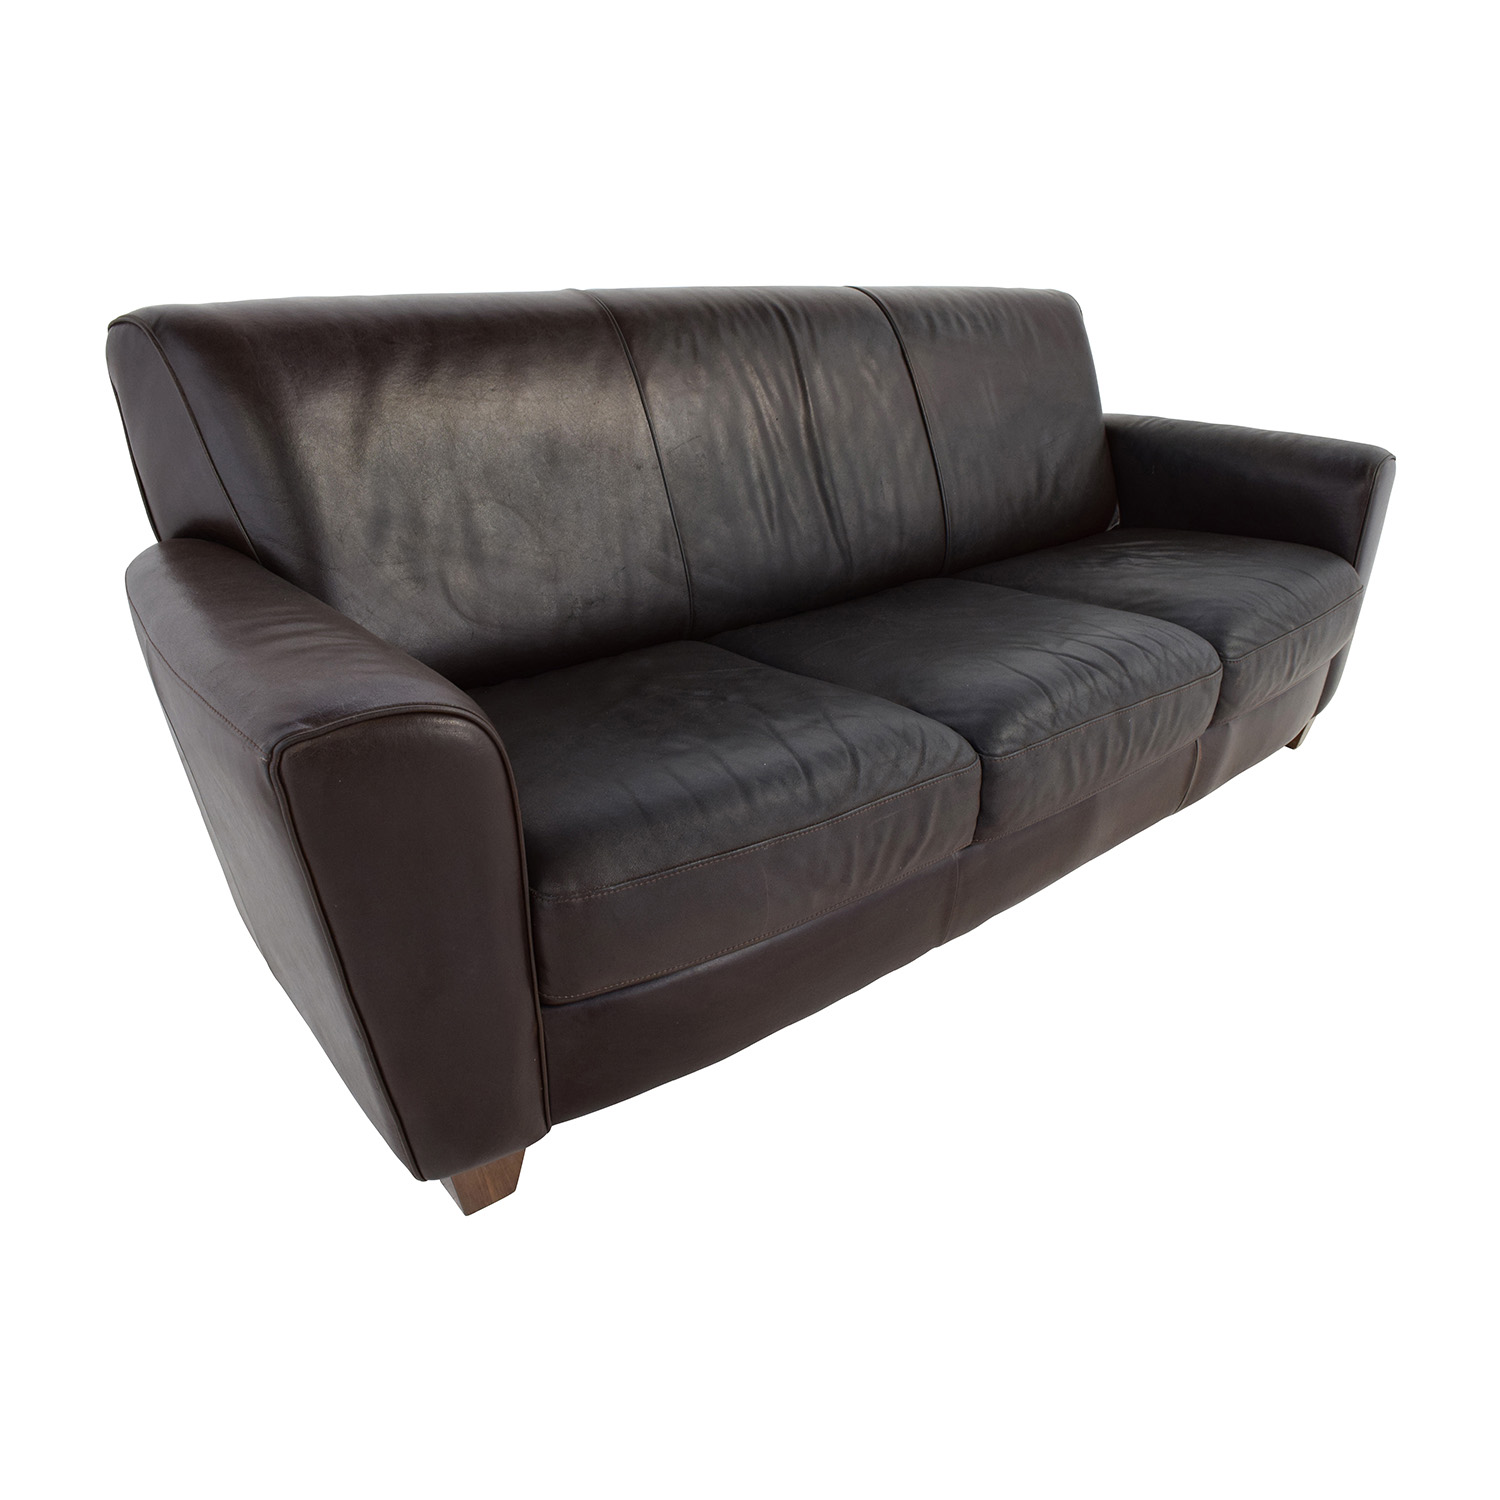 Second Hand Leather Sofas Gosport: Brown Leather Three Cushion Sofa / Sofas